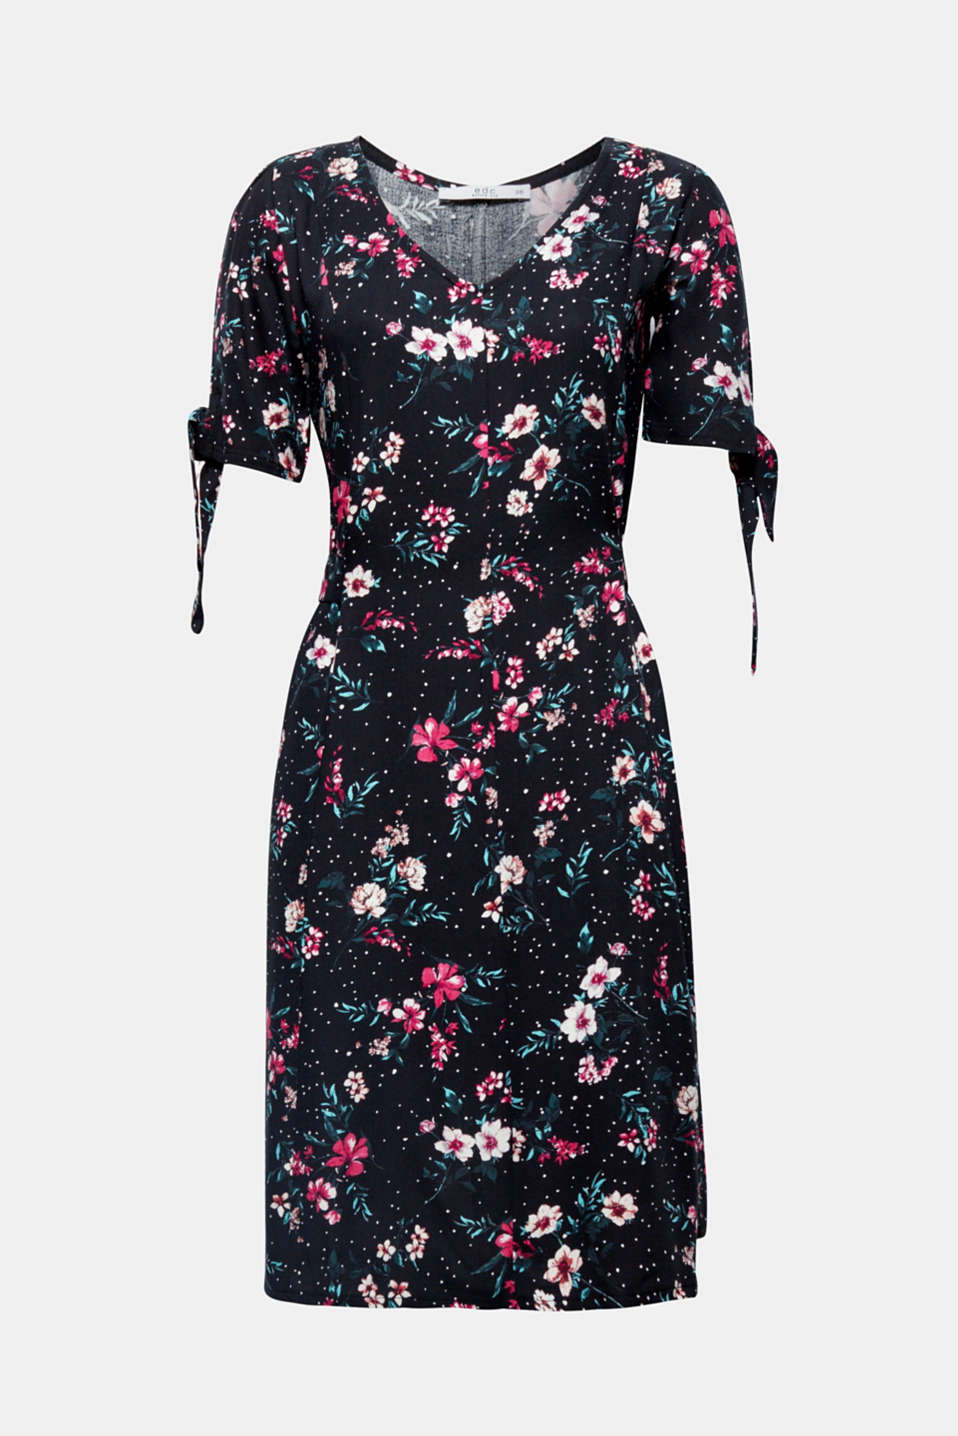 This flowing dress featuring a pretty floral print, bows on the sleeves, a fixed tie-around belt and swirling skirt is simply perfect for an on-trend, feminine look!